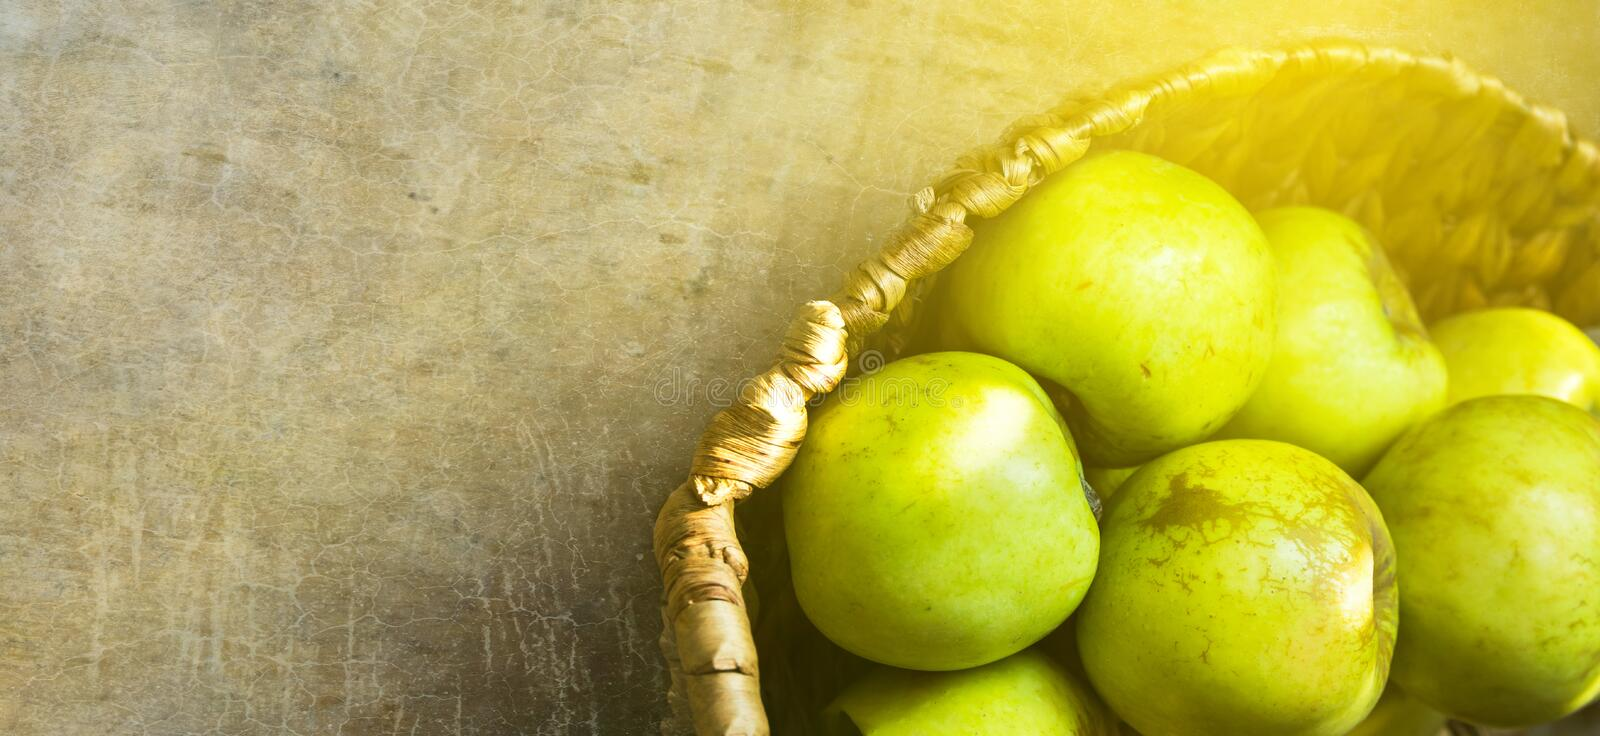 Long banner fresh green organic apples in wicker basket on rustic wooden table in golden sunlight. Local produce royalty free stock photography